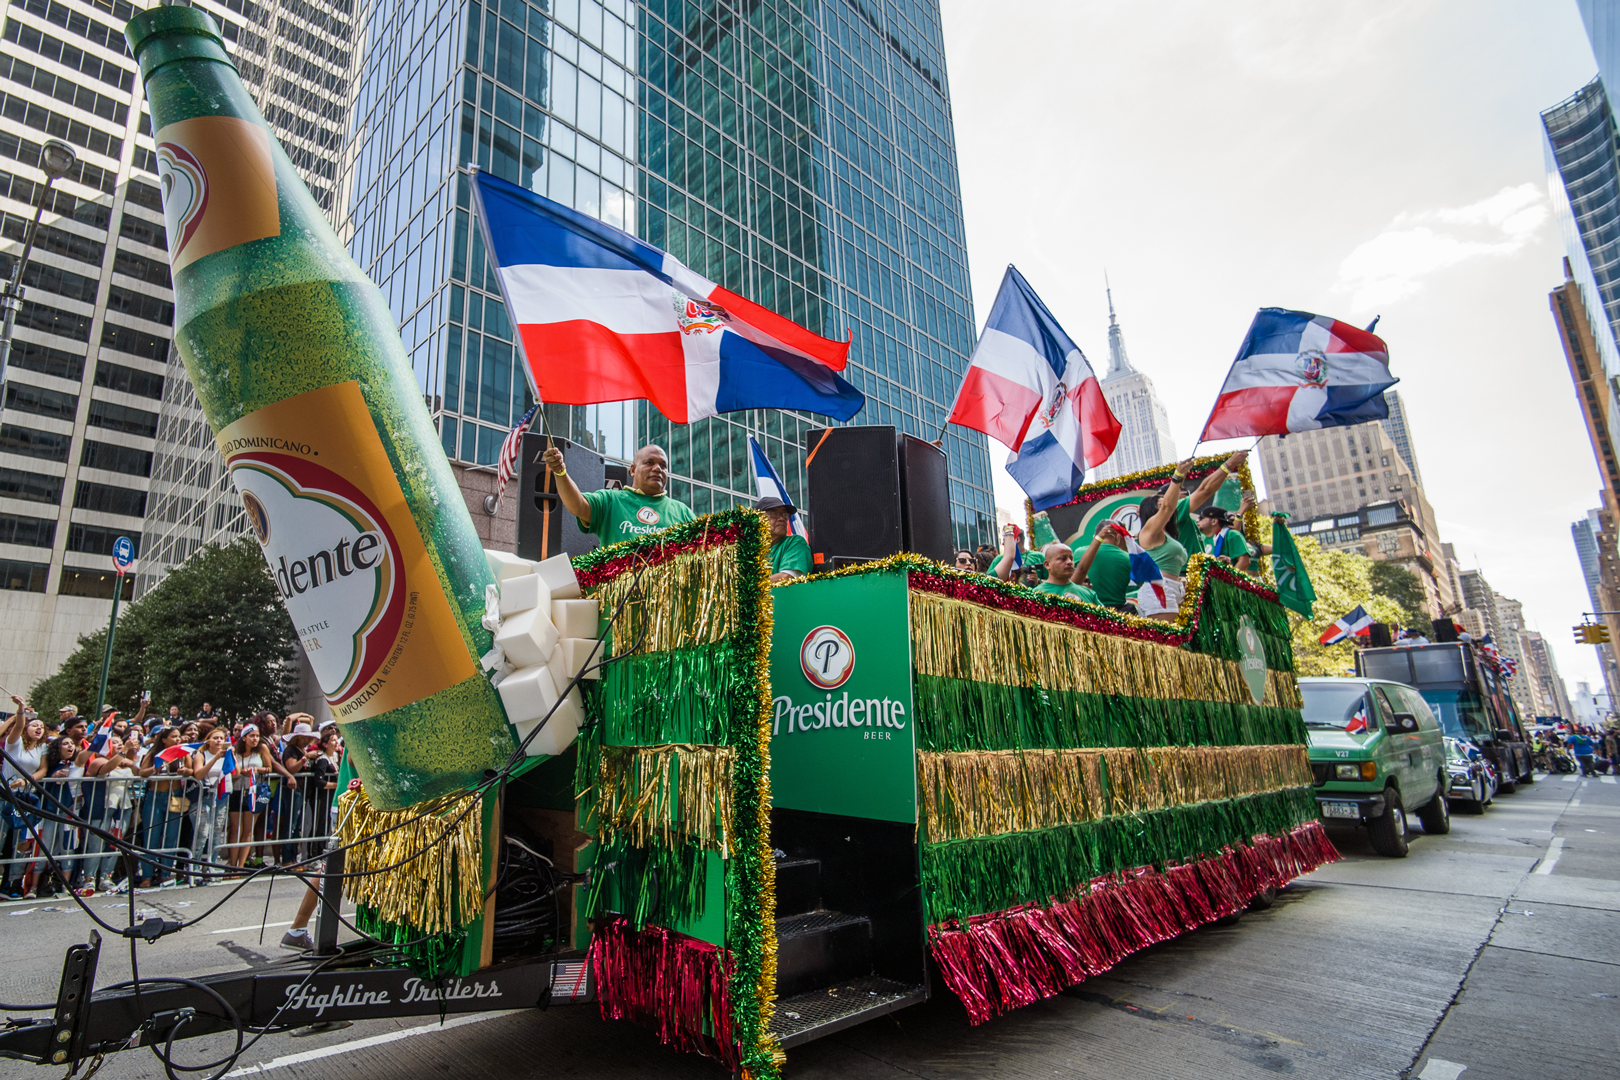 Parade Float Rentals - One Source for Parade Float Rentals